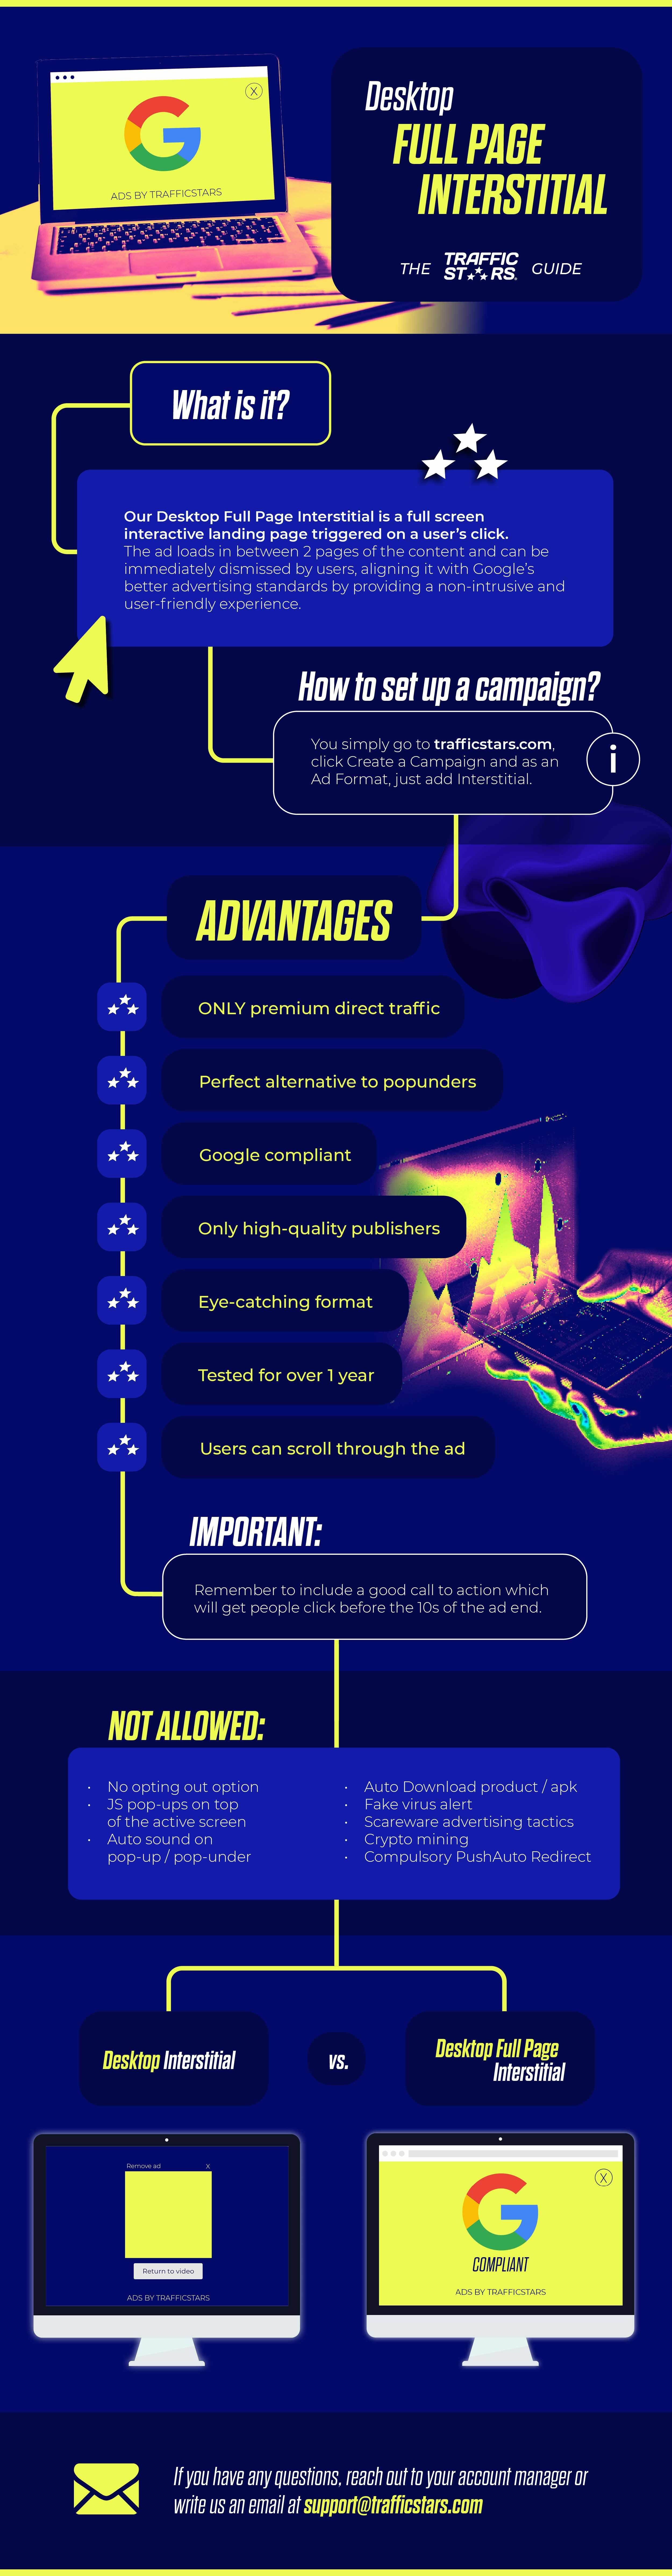 TrafficStars_desktop_full_page_Interstitial_guide_blog